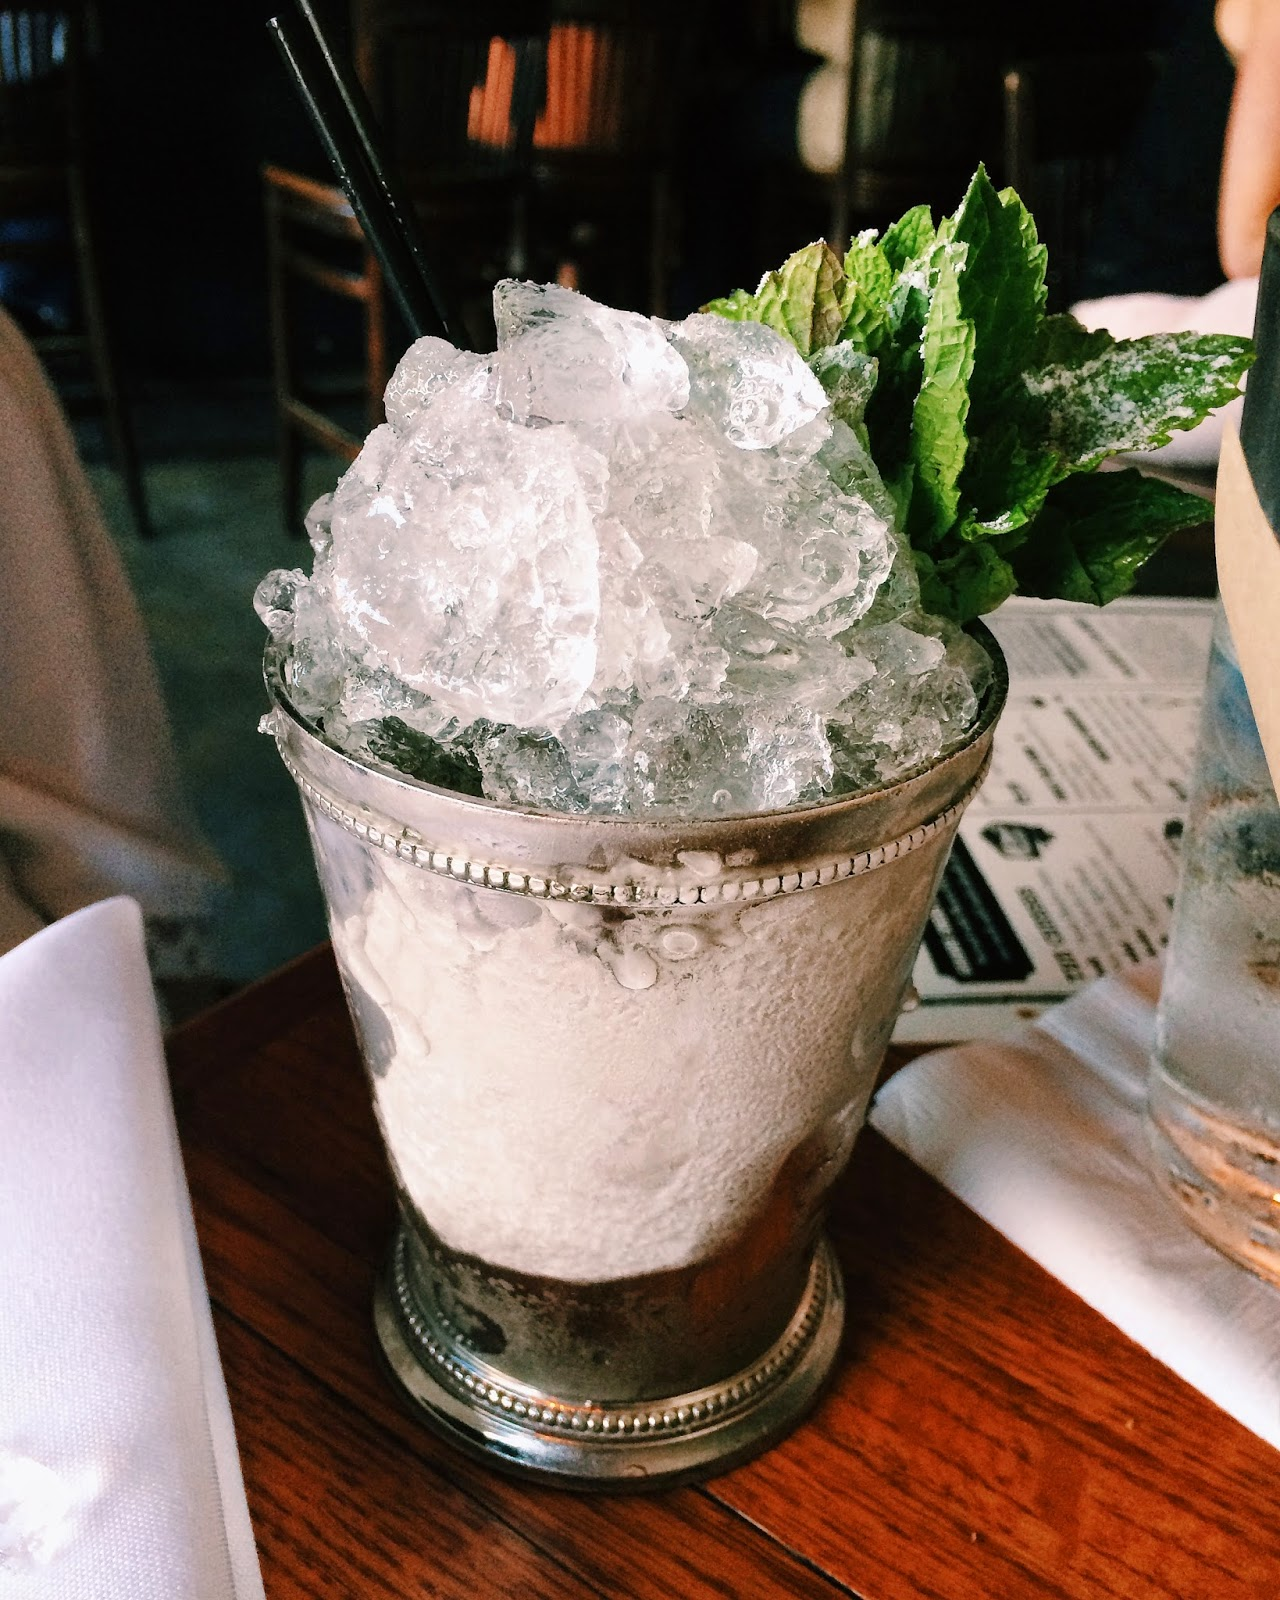 Trendy in Texas, Anvil Bar, Anvil Bar & Refuge, Anvil Bar and Refuge, Montrose, Houston, Mint Julep